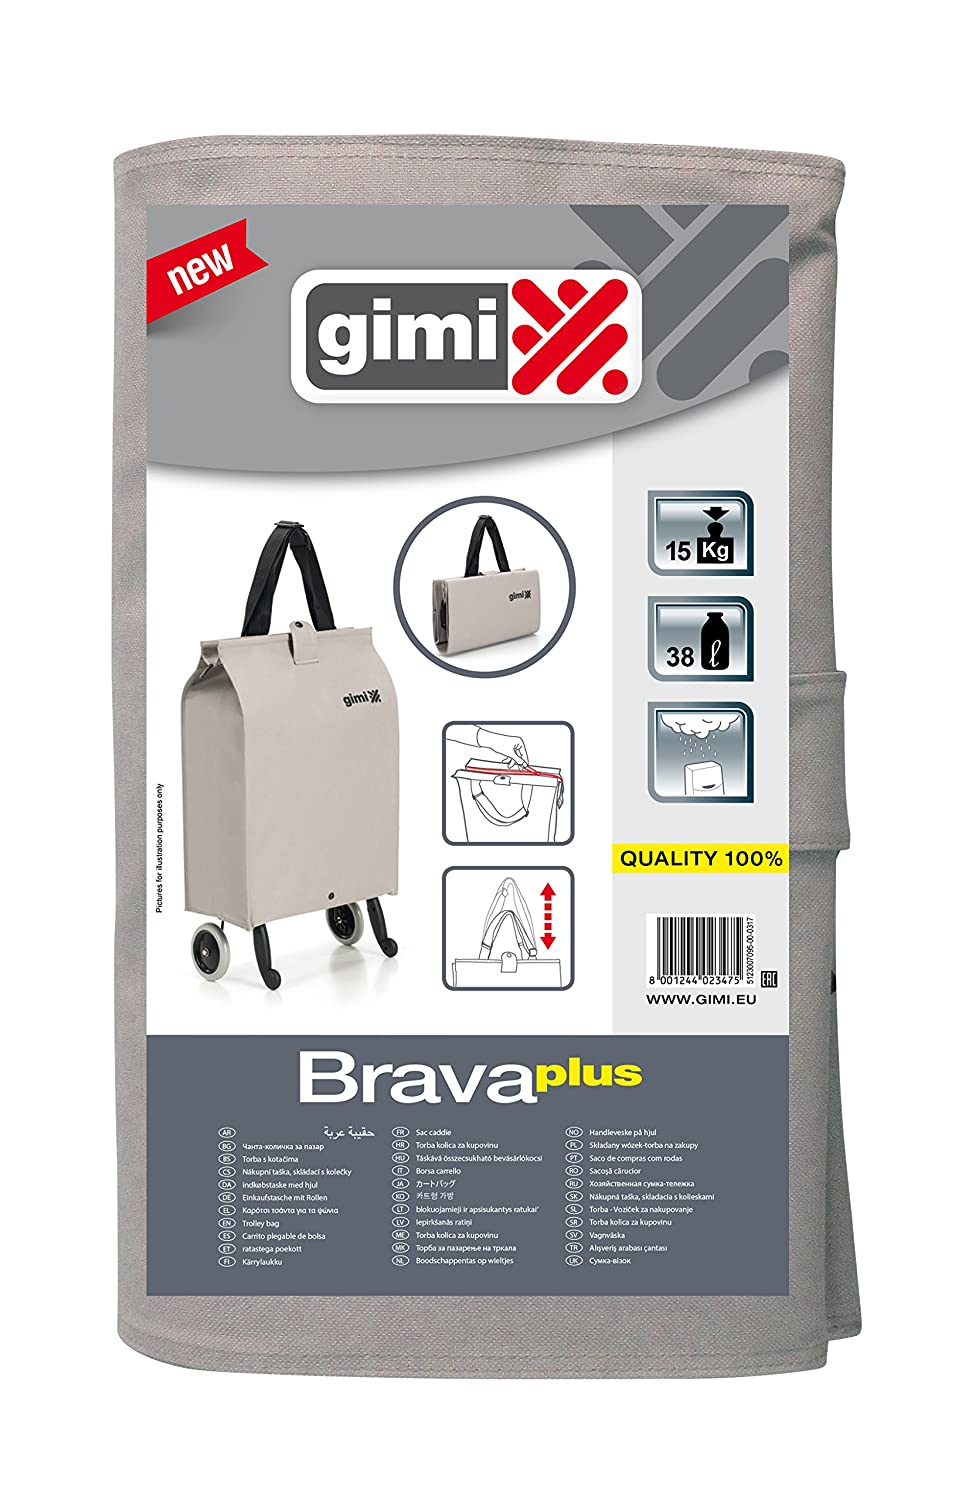 Amazon.com - GIMI 157770 Shopping Bag Brava Plus Shopping Bag Fabric, Beige, 7 x 45 x 30 cm -